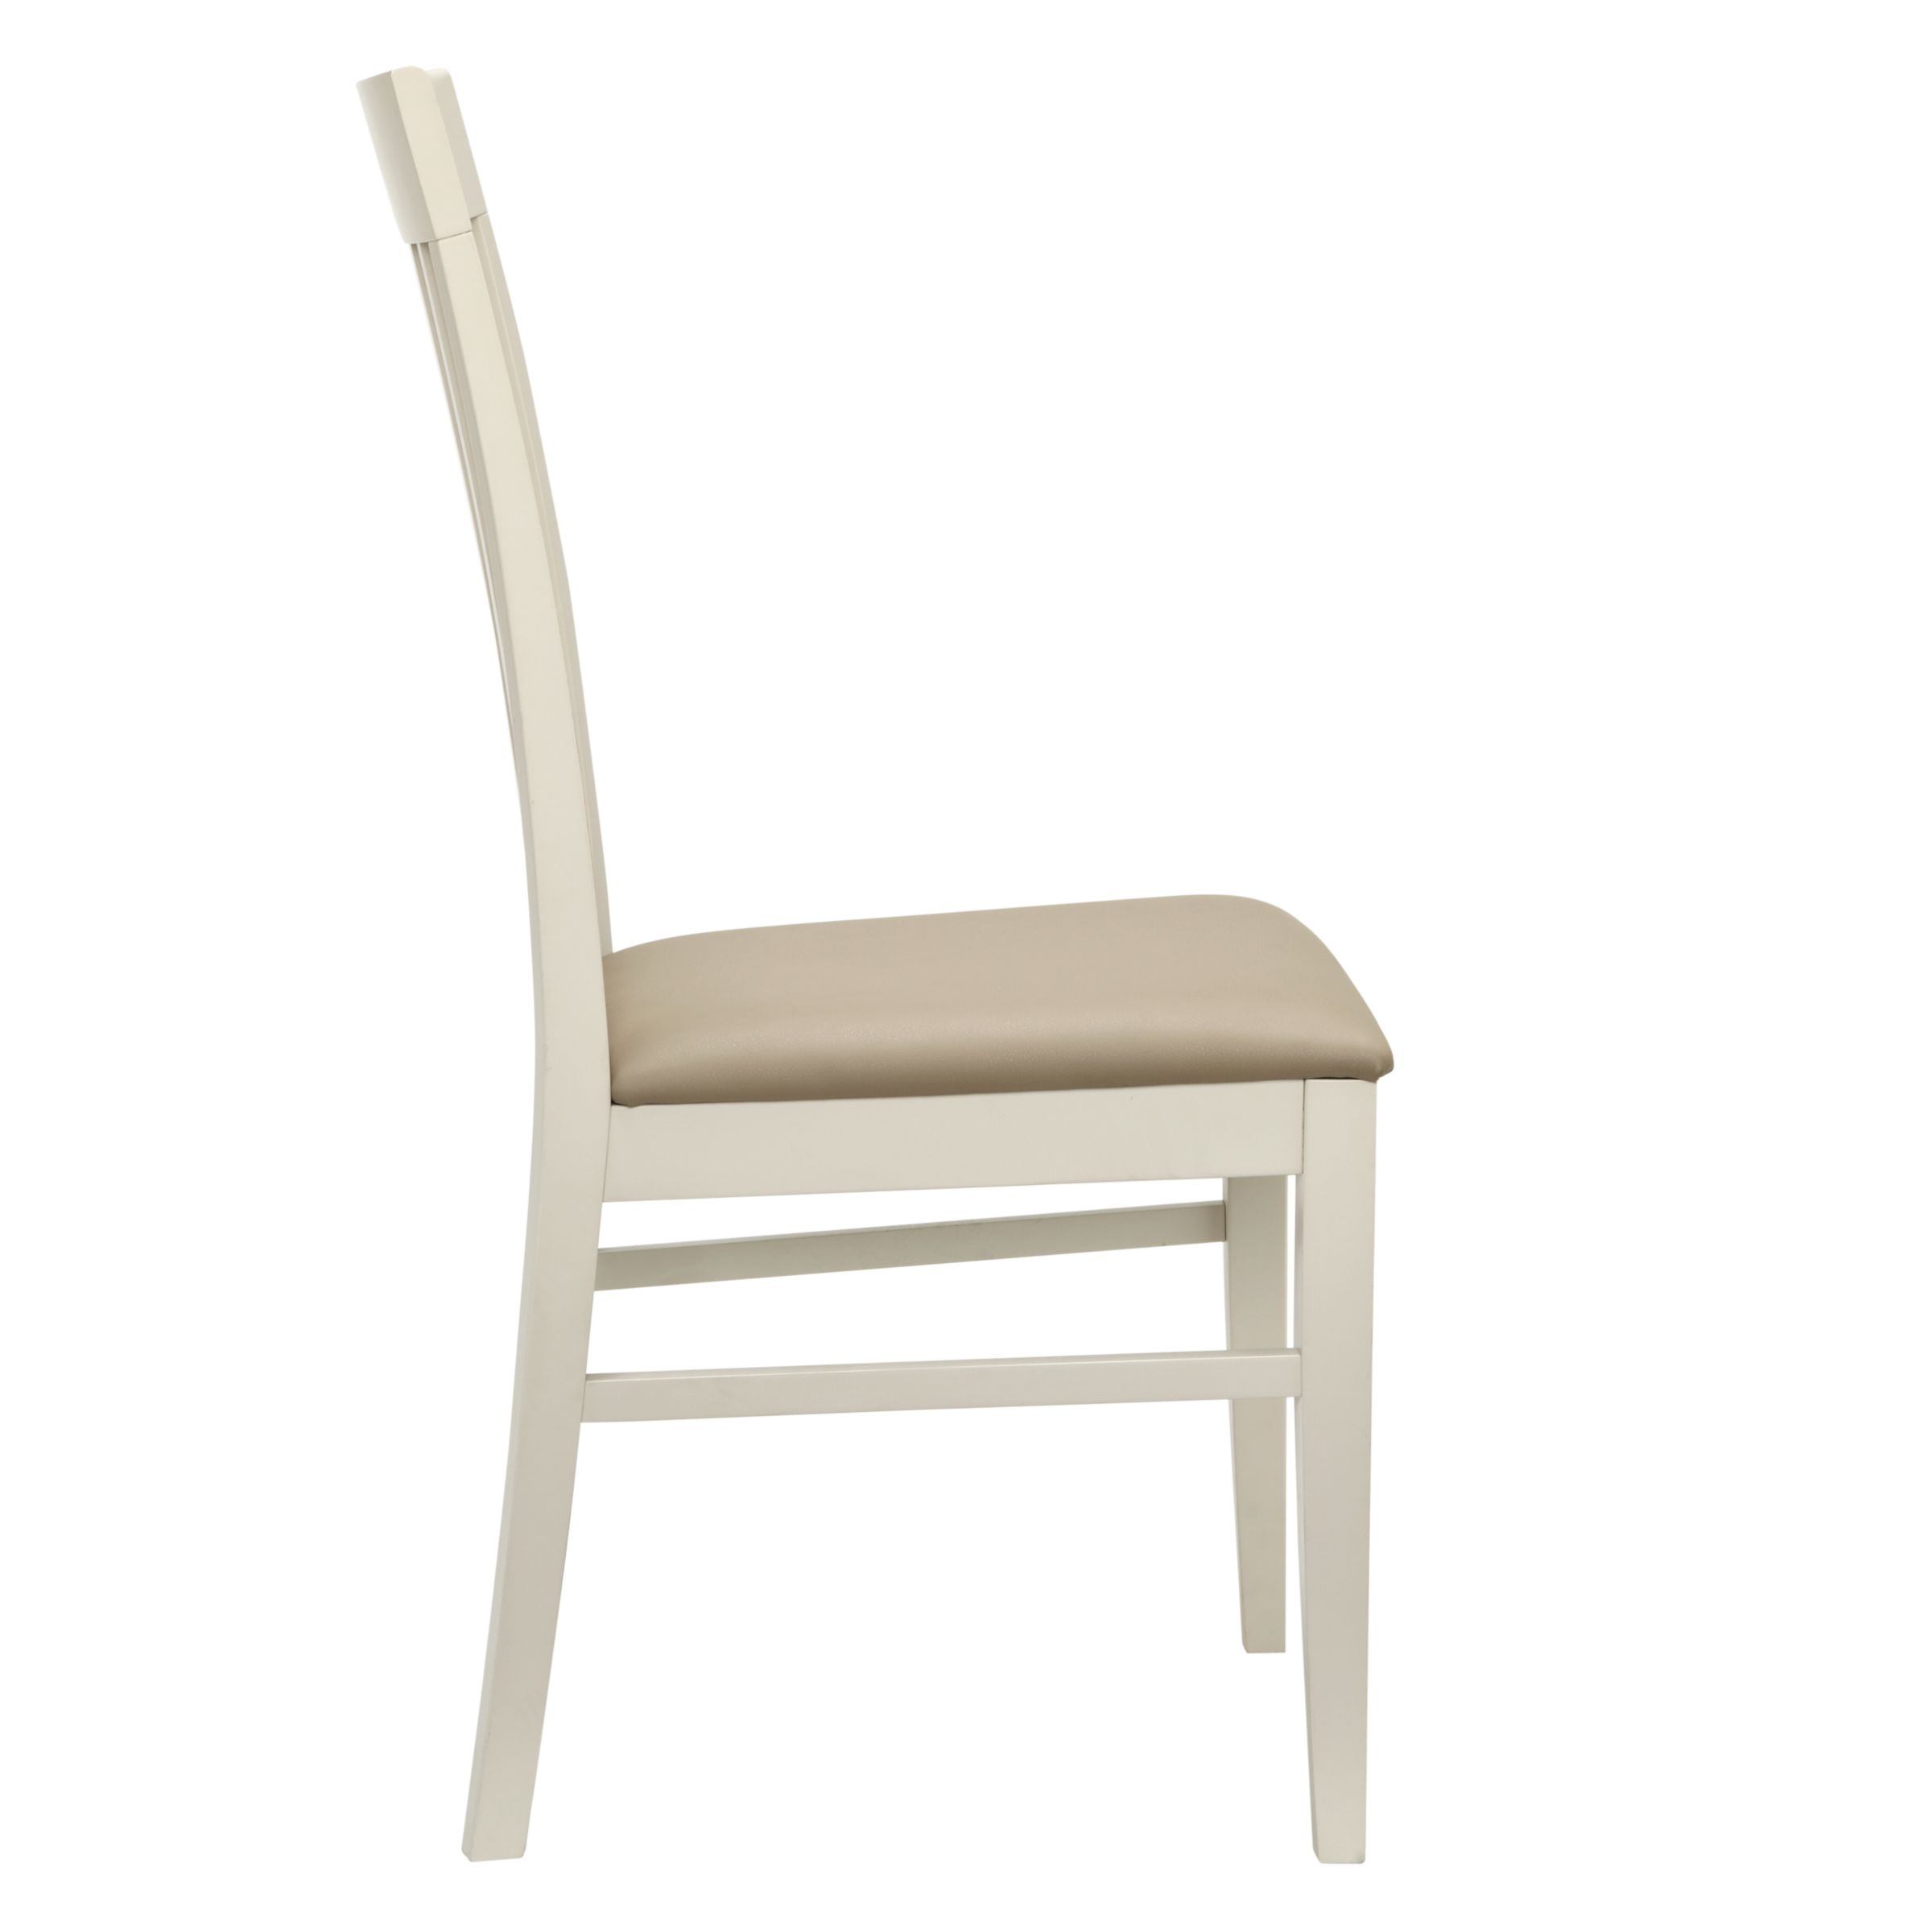 alba slat back dining chair tete a outdoor john lewis at